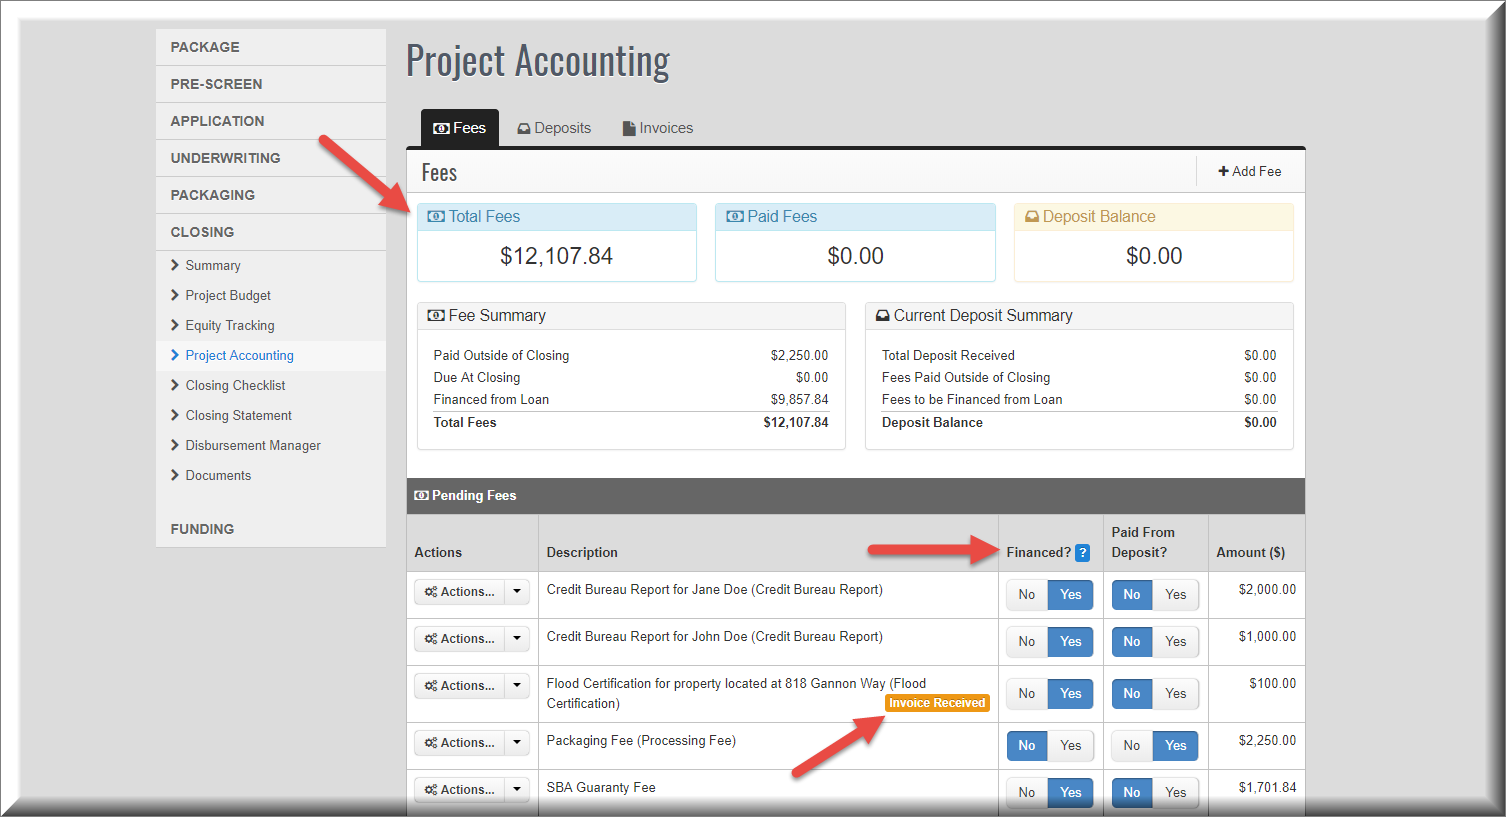 Project accounting fee changes made in SPARK version 6.6